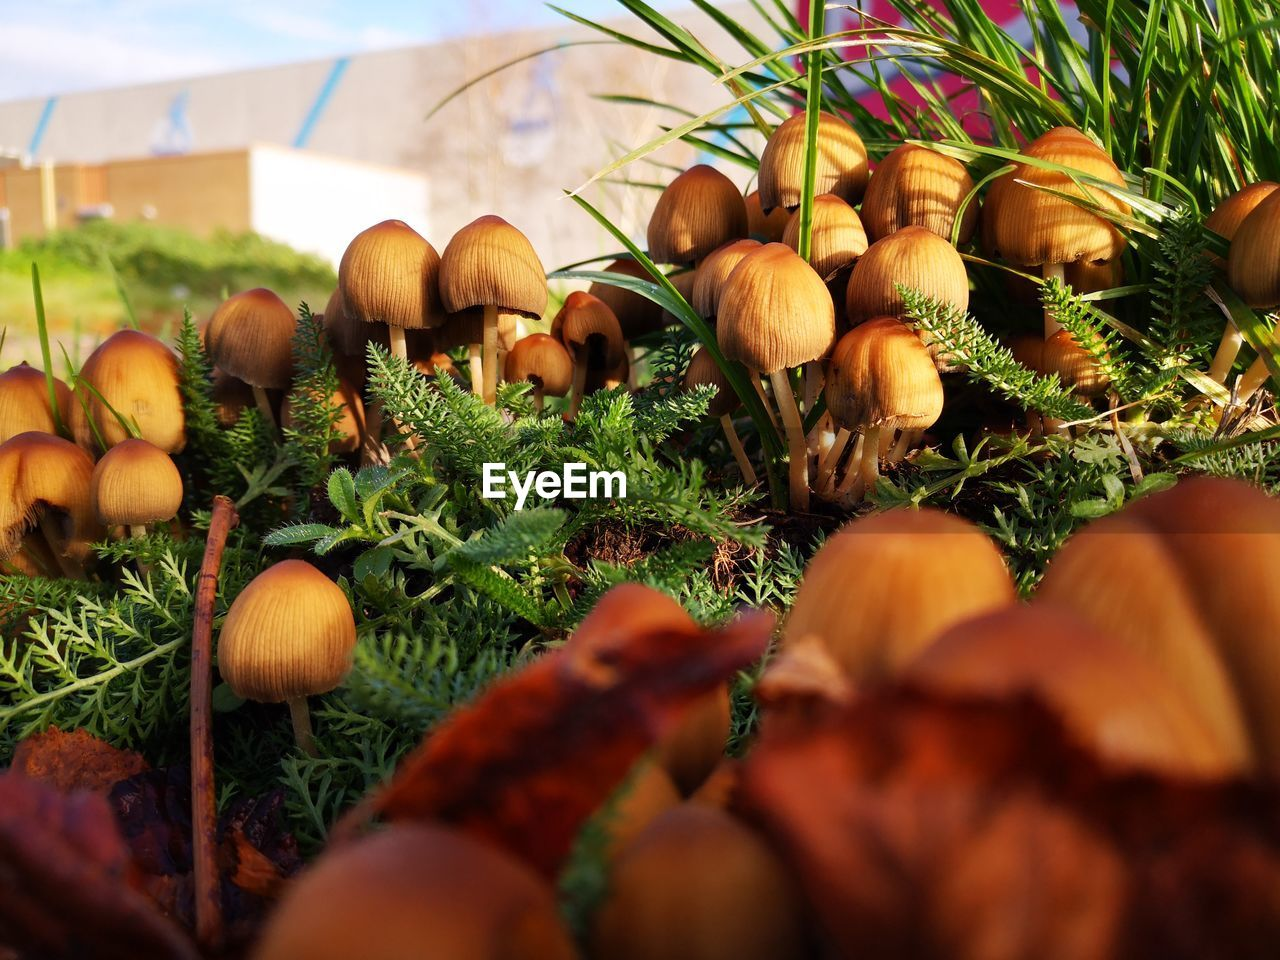 food, food and drink, selective focus, vegetable, freshness, healthy eating, wellbeing, close-up, plant, growth, land, nature, day, no people, field, fungus, mushroom, agriculture, brown, outdoors, toadstool